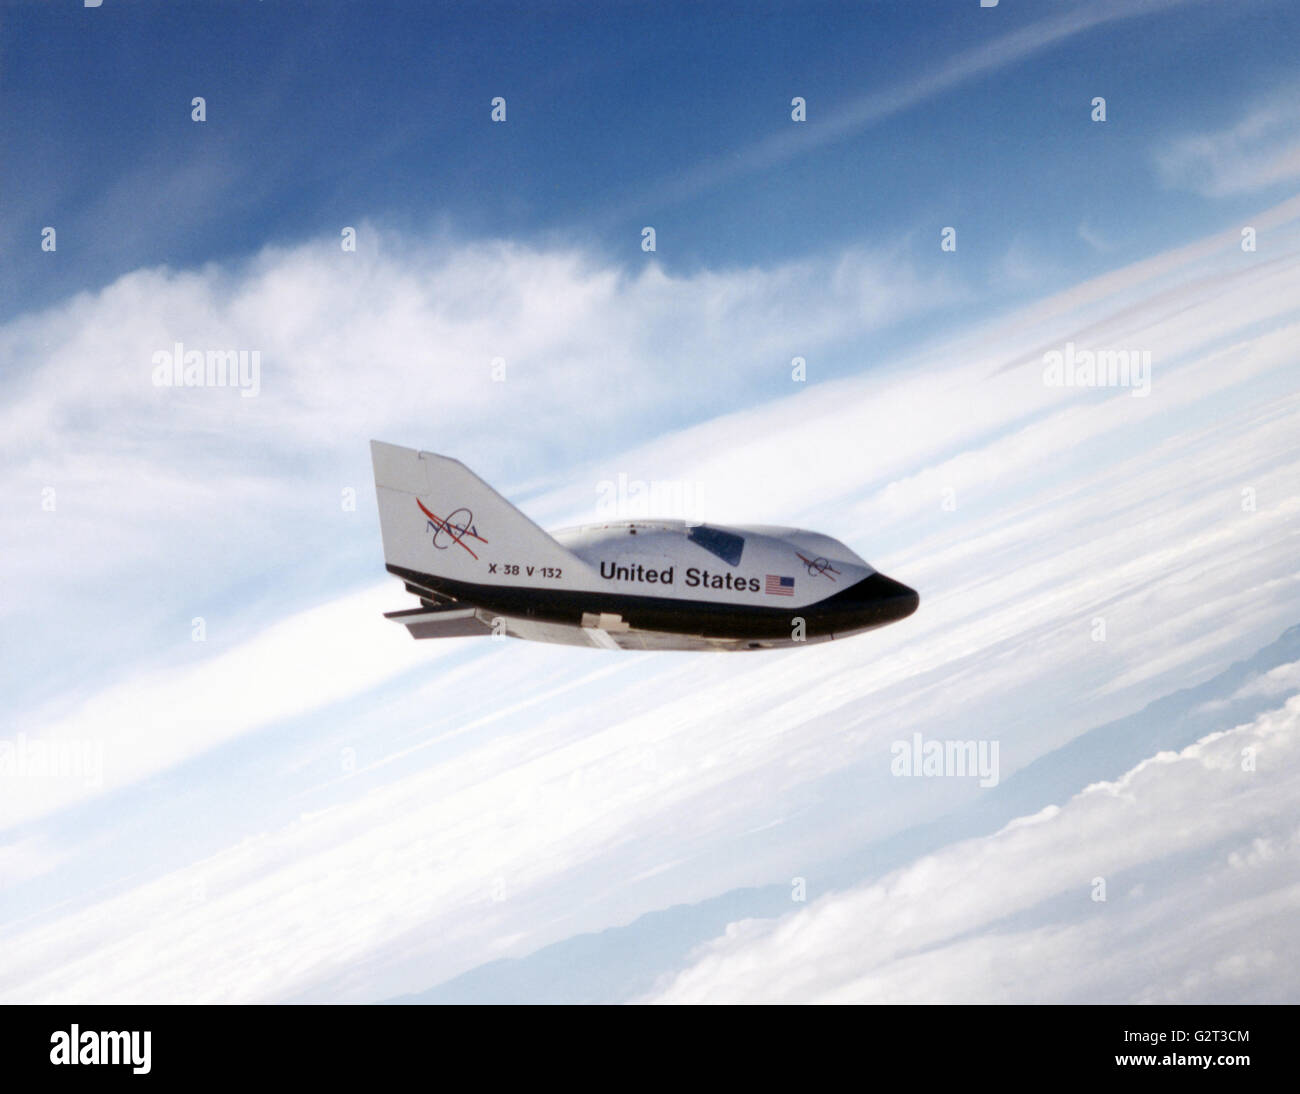 The NASA X-38 prototype Crew Return Vehicle descends during a test flight at the Dryden Flight Research Center July - Stock Image